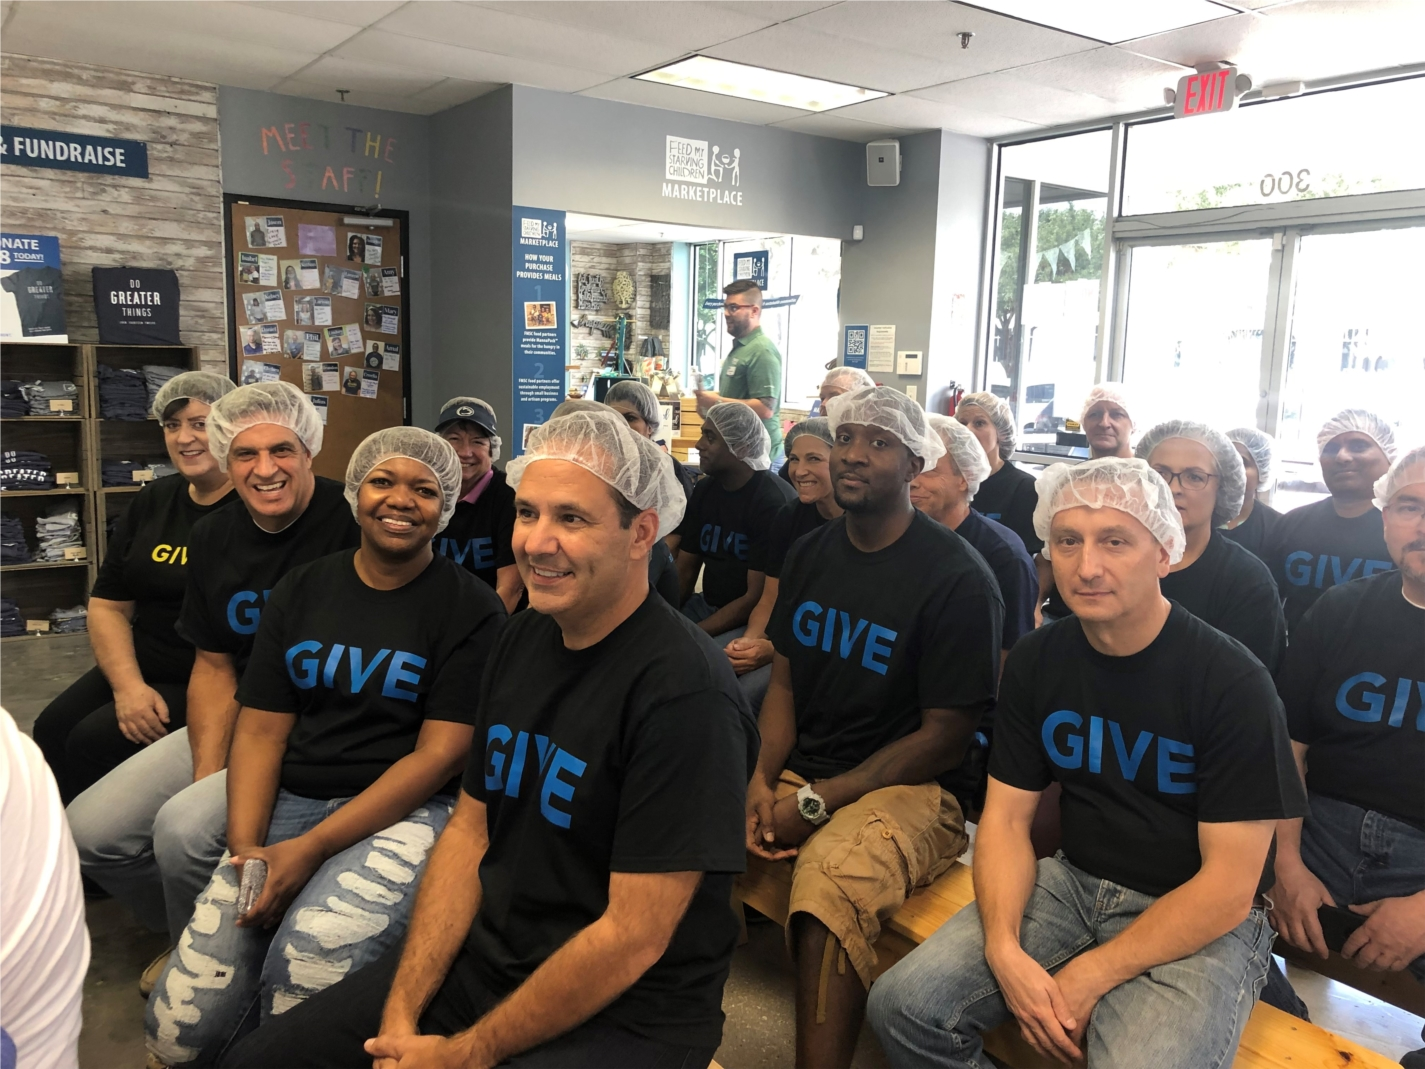 NASCO CEO, John Ladaga, and associates in Plano, Texas giving back by packaging meals for starving children.